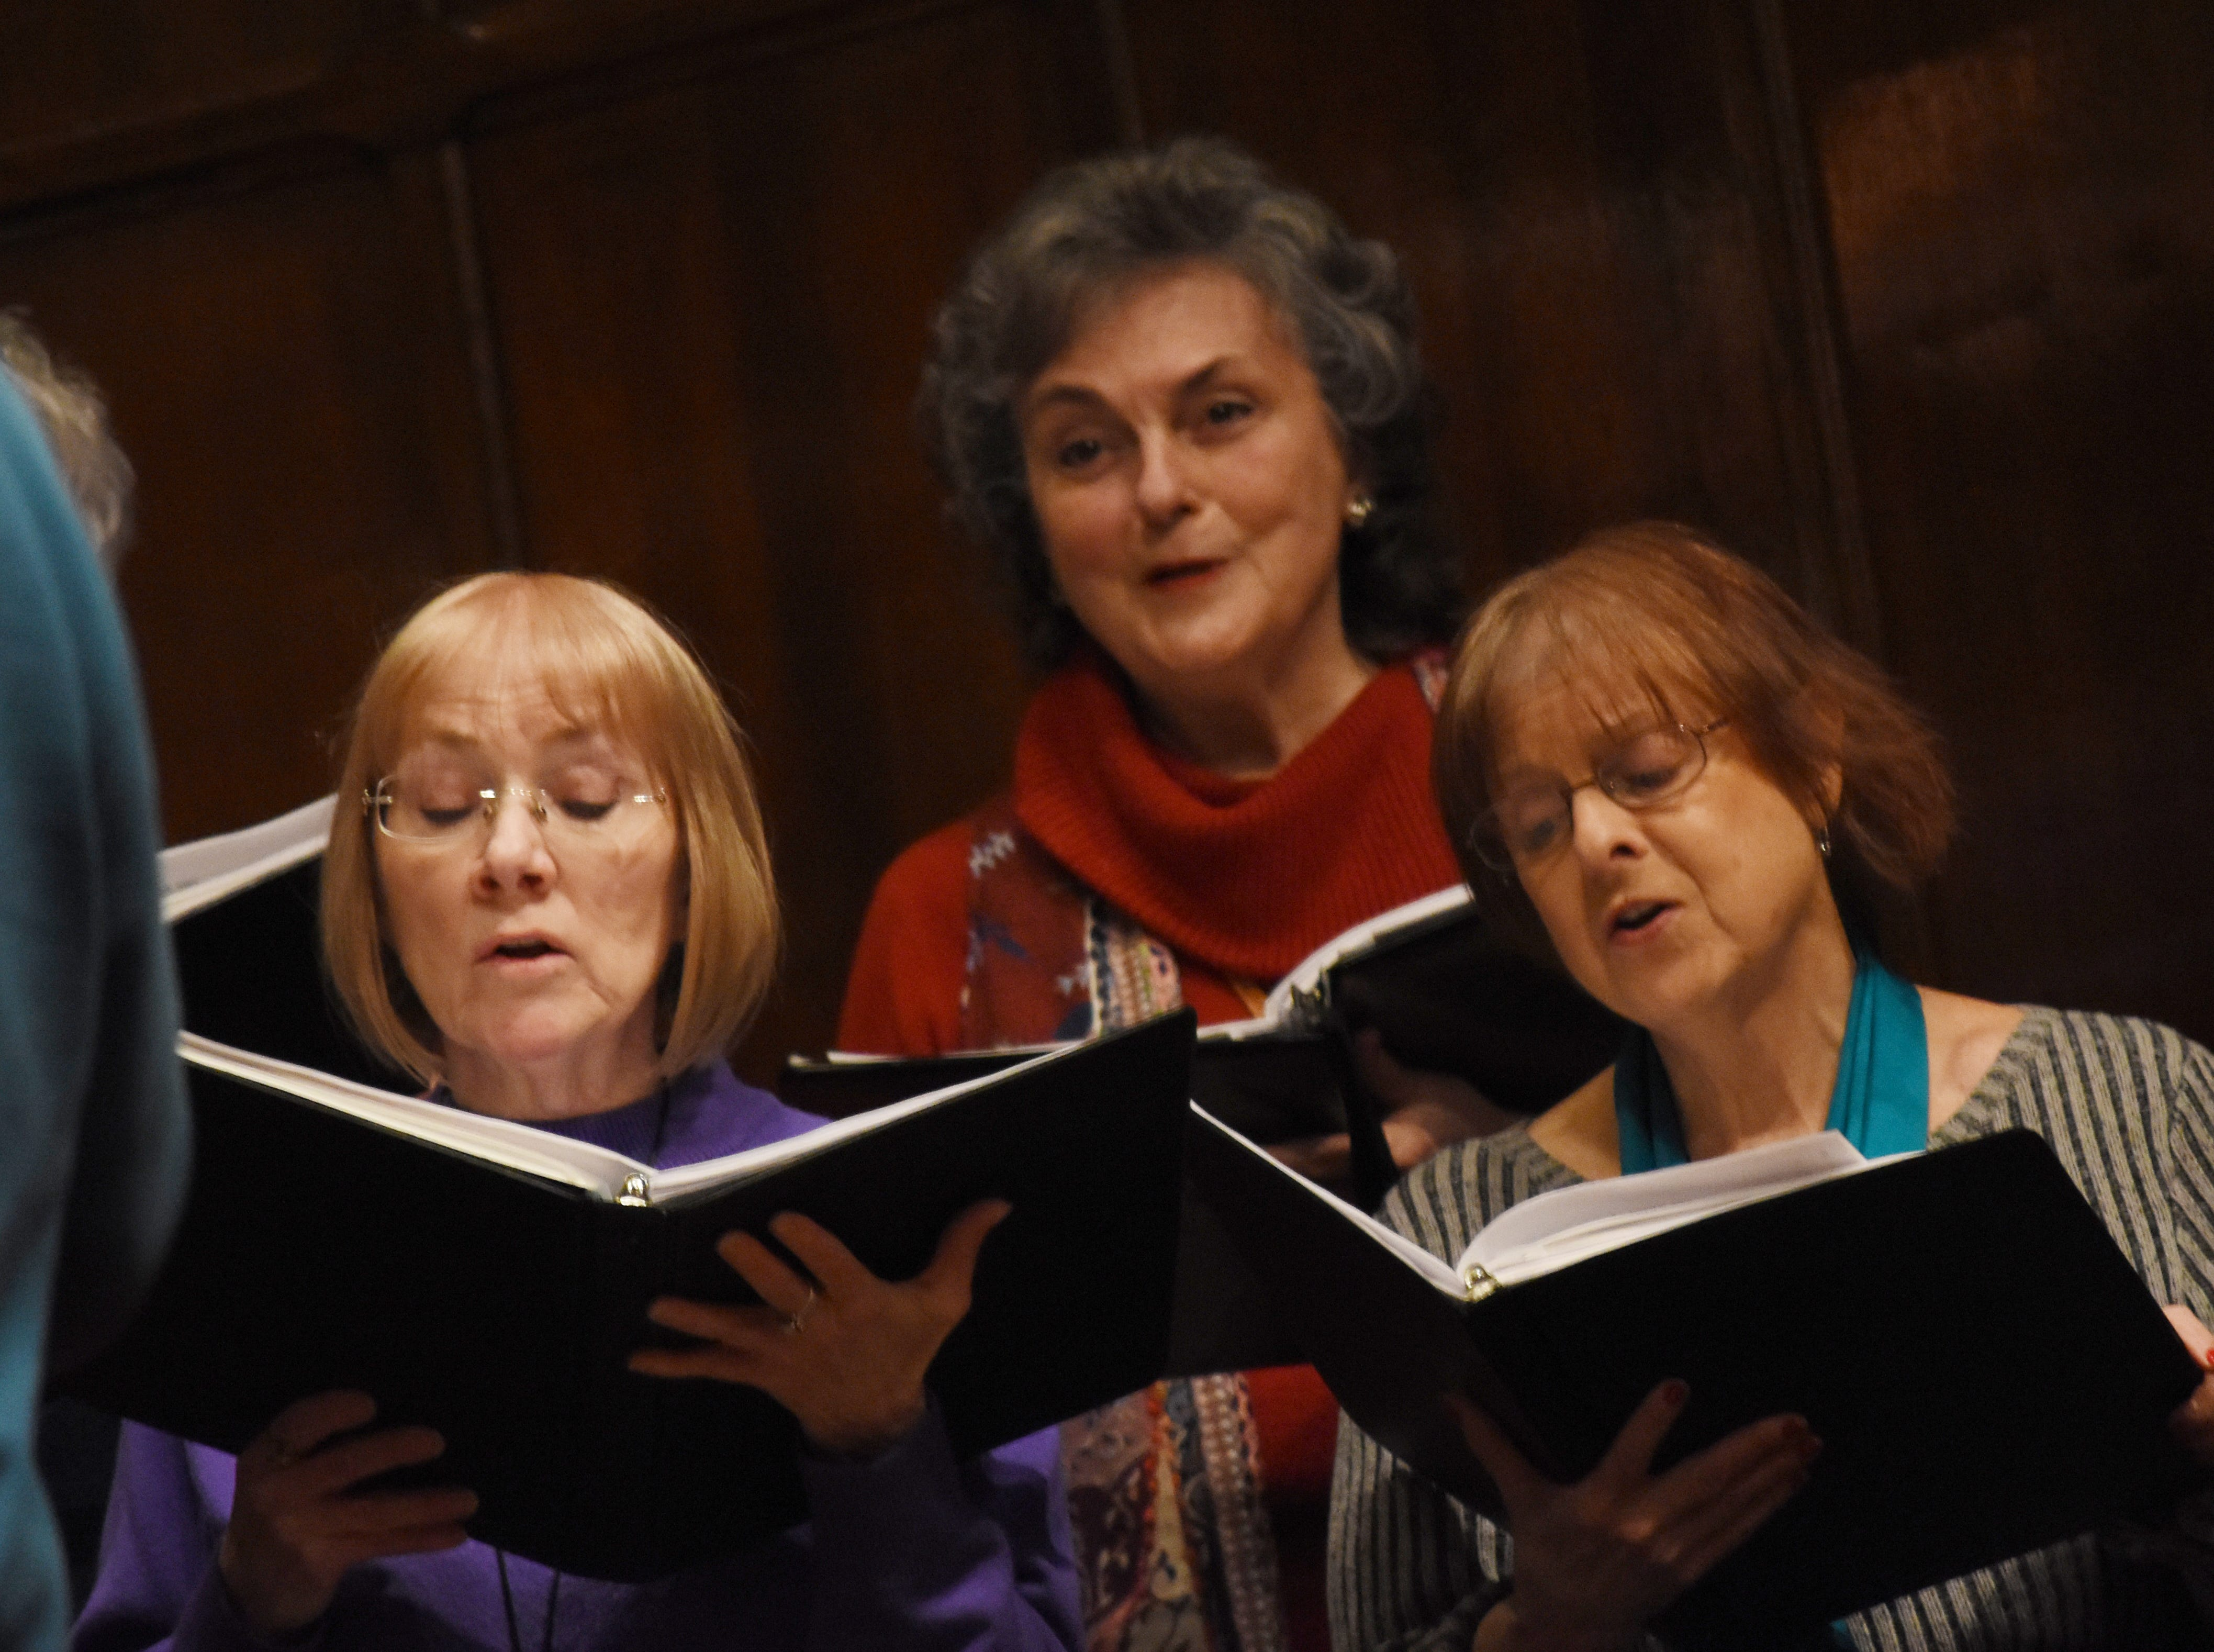 """The Red River Chorale, under the direction of Dr. Burt Allen, will present a concert, """"Inspired by Liturgy,"""" at 7:30 Tuesday, March 12, 2019 at Emmanuel Baptist Church. The concert is based on the Liturgical works of composers like Mozart, Shubert and Vivaldi. Tickets are $15 for adults and $5 for students and can be purchased from a chorale member, Red River Music store or online at Red River Choraleor TicketCentral."""